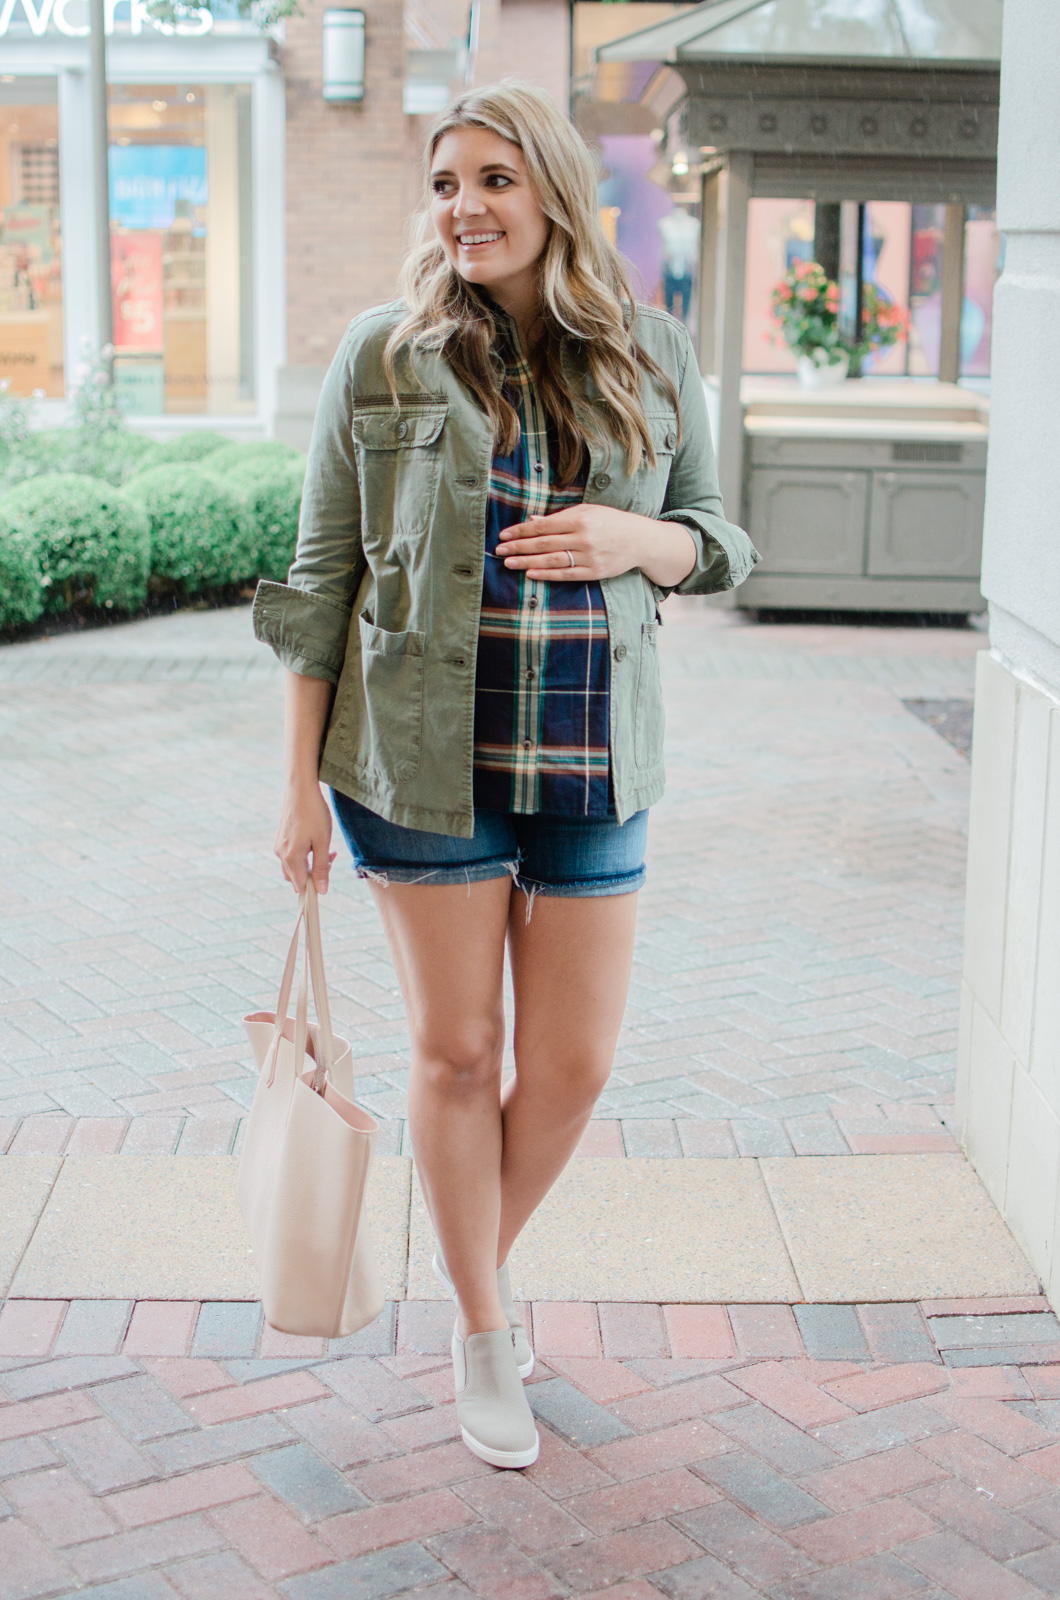 early fall outfit ideas - plaid with cargo jacket and shorts maternity style | bylaurenm.com